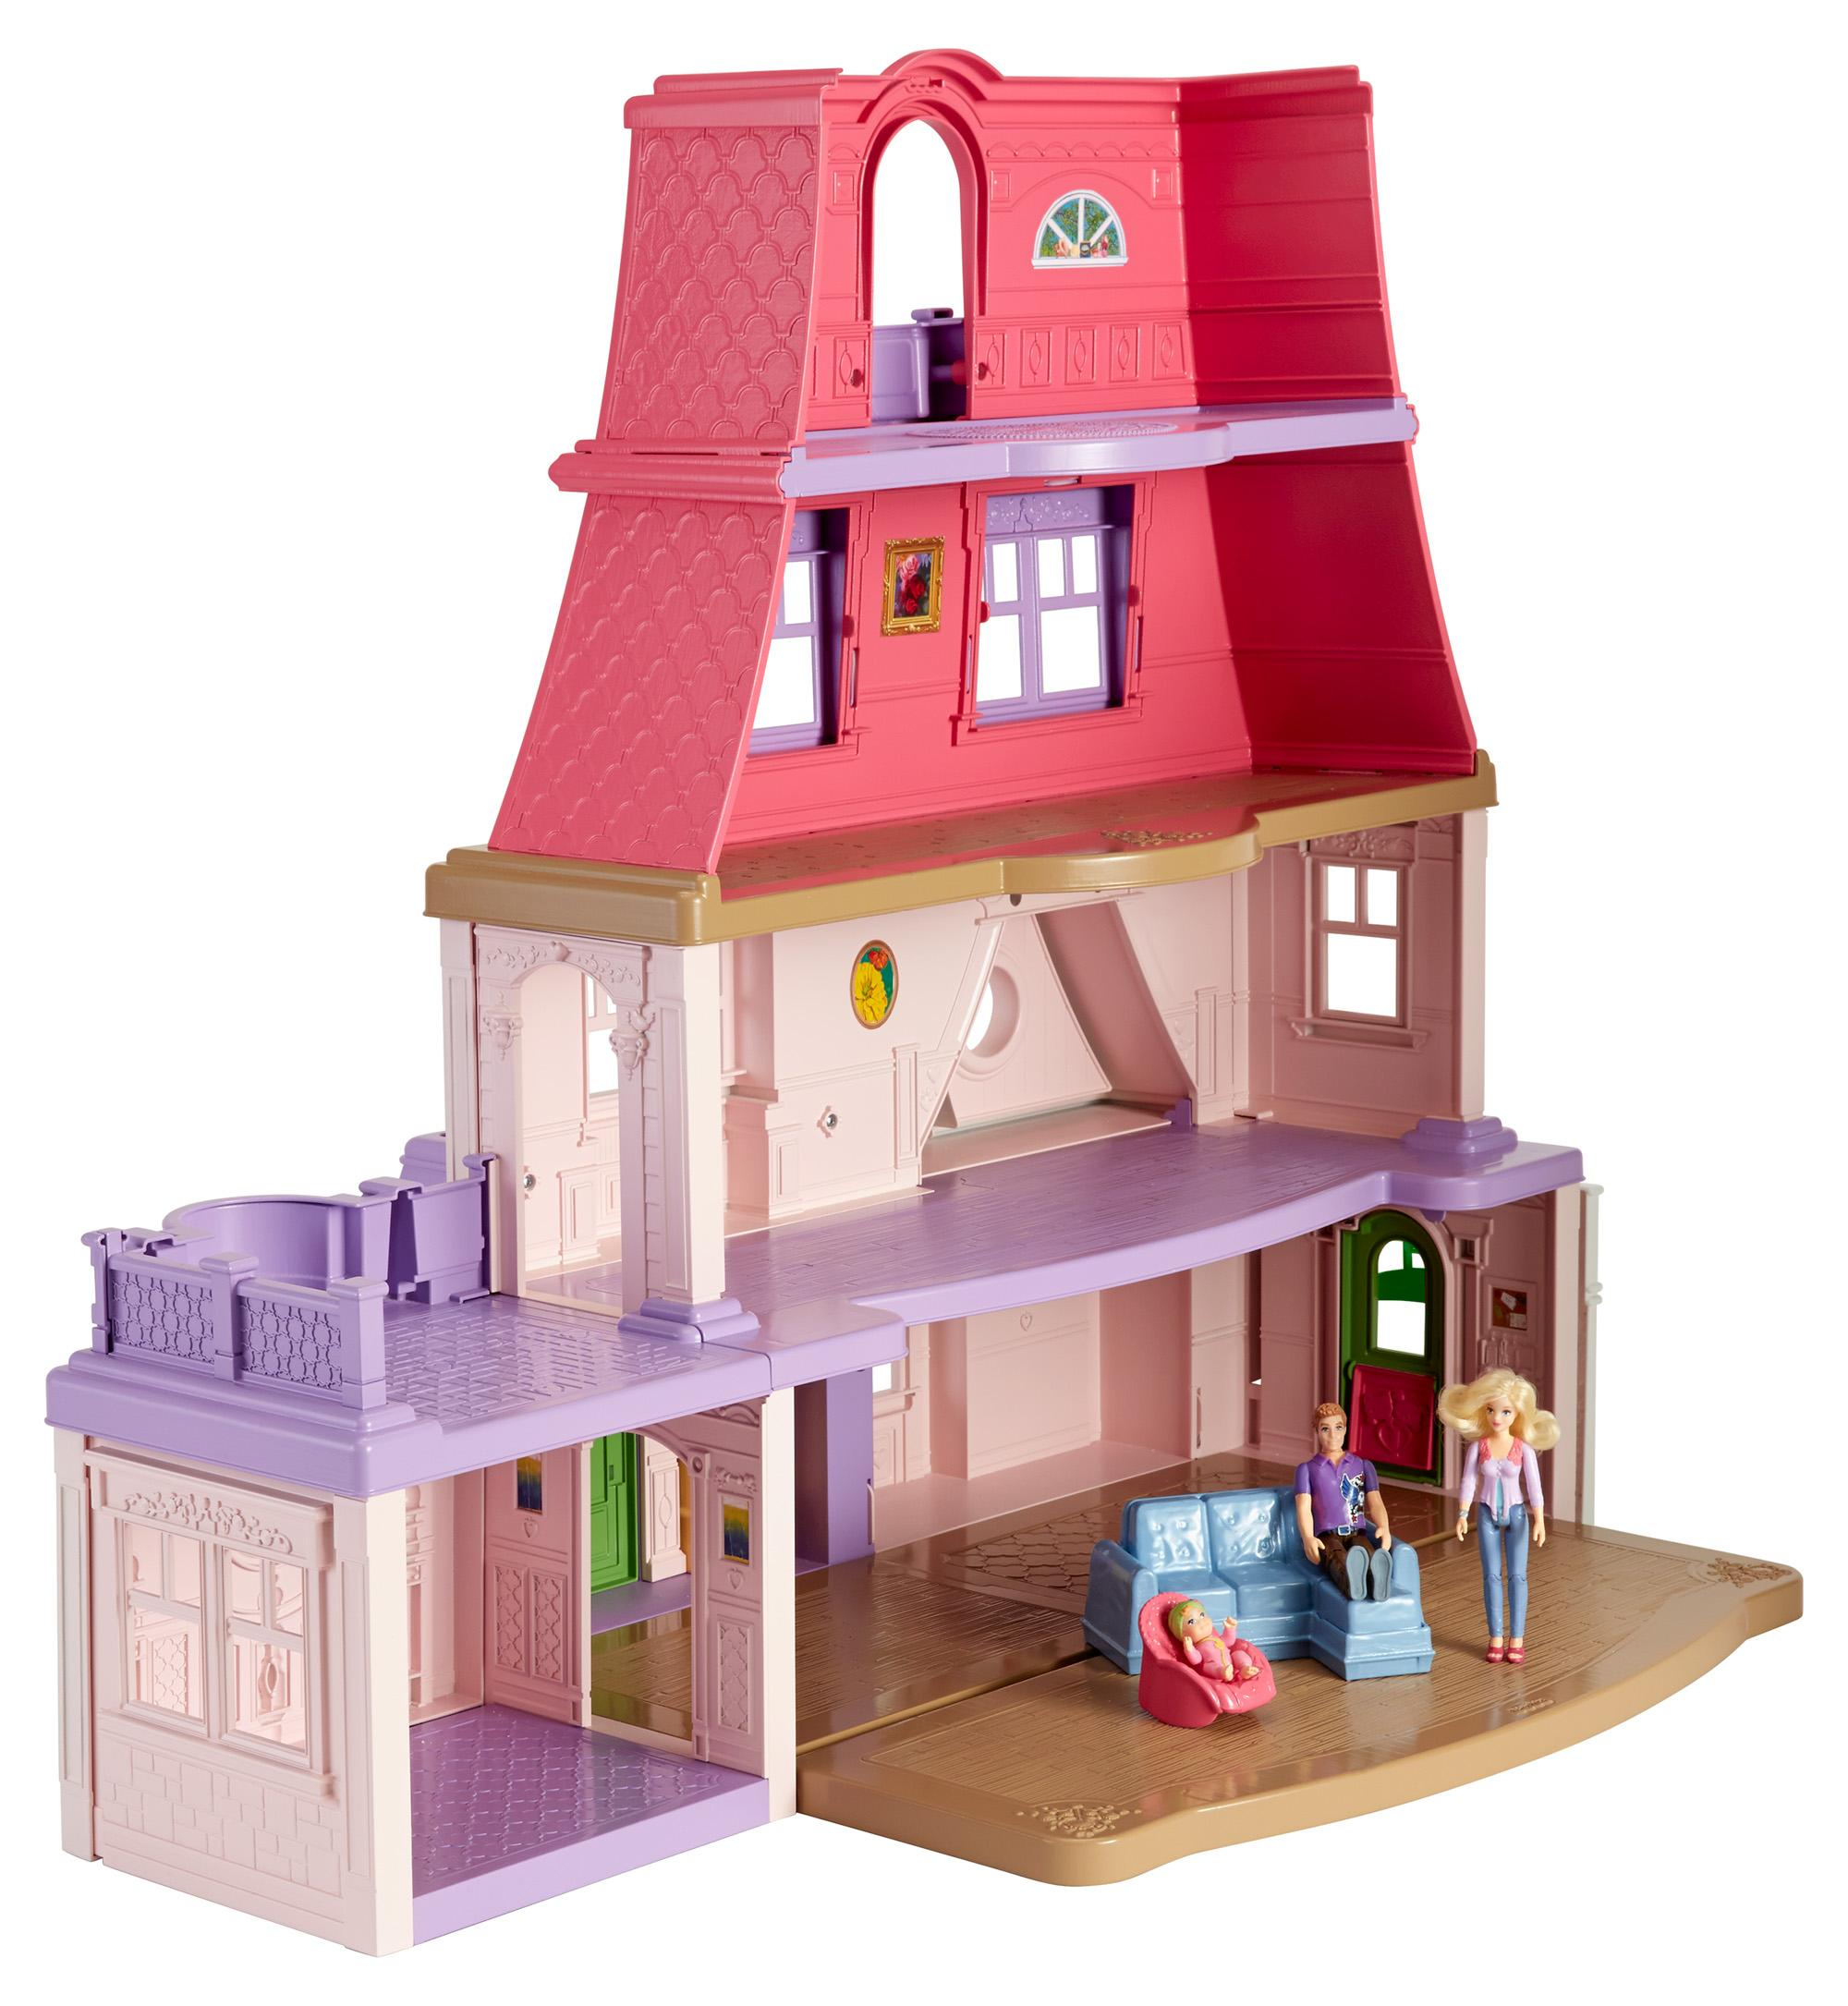 Amazon.com: Fisher-Price Loving Family Dollhouse: Toys & Games